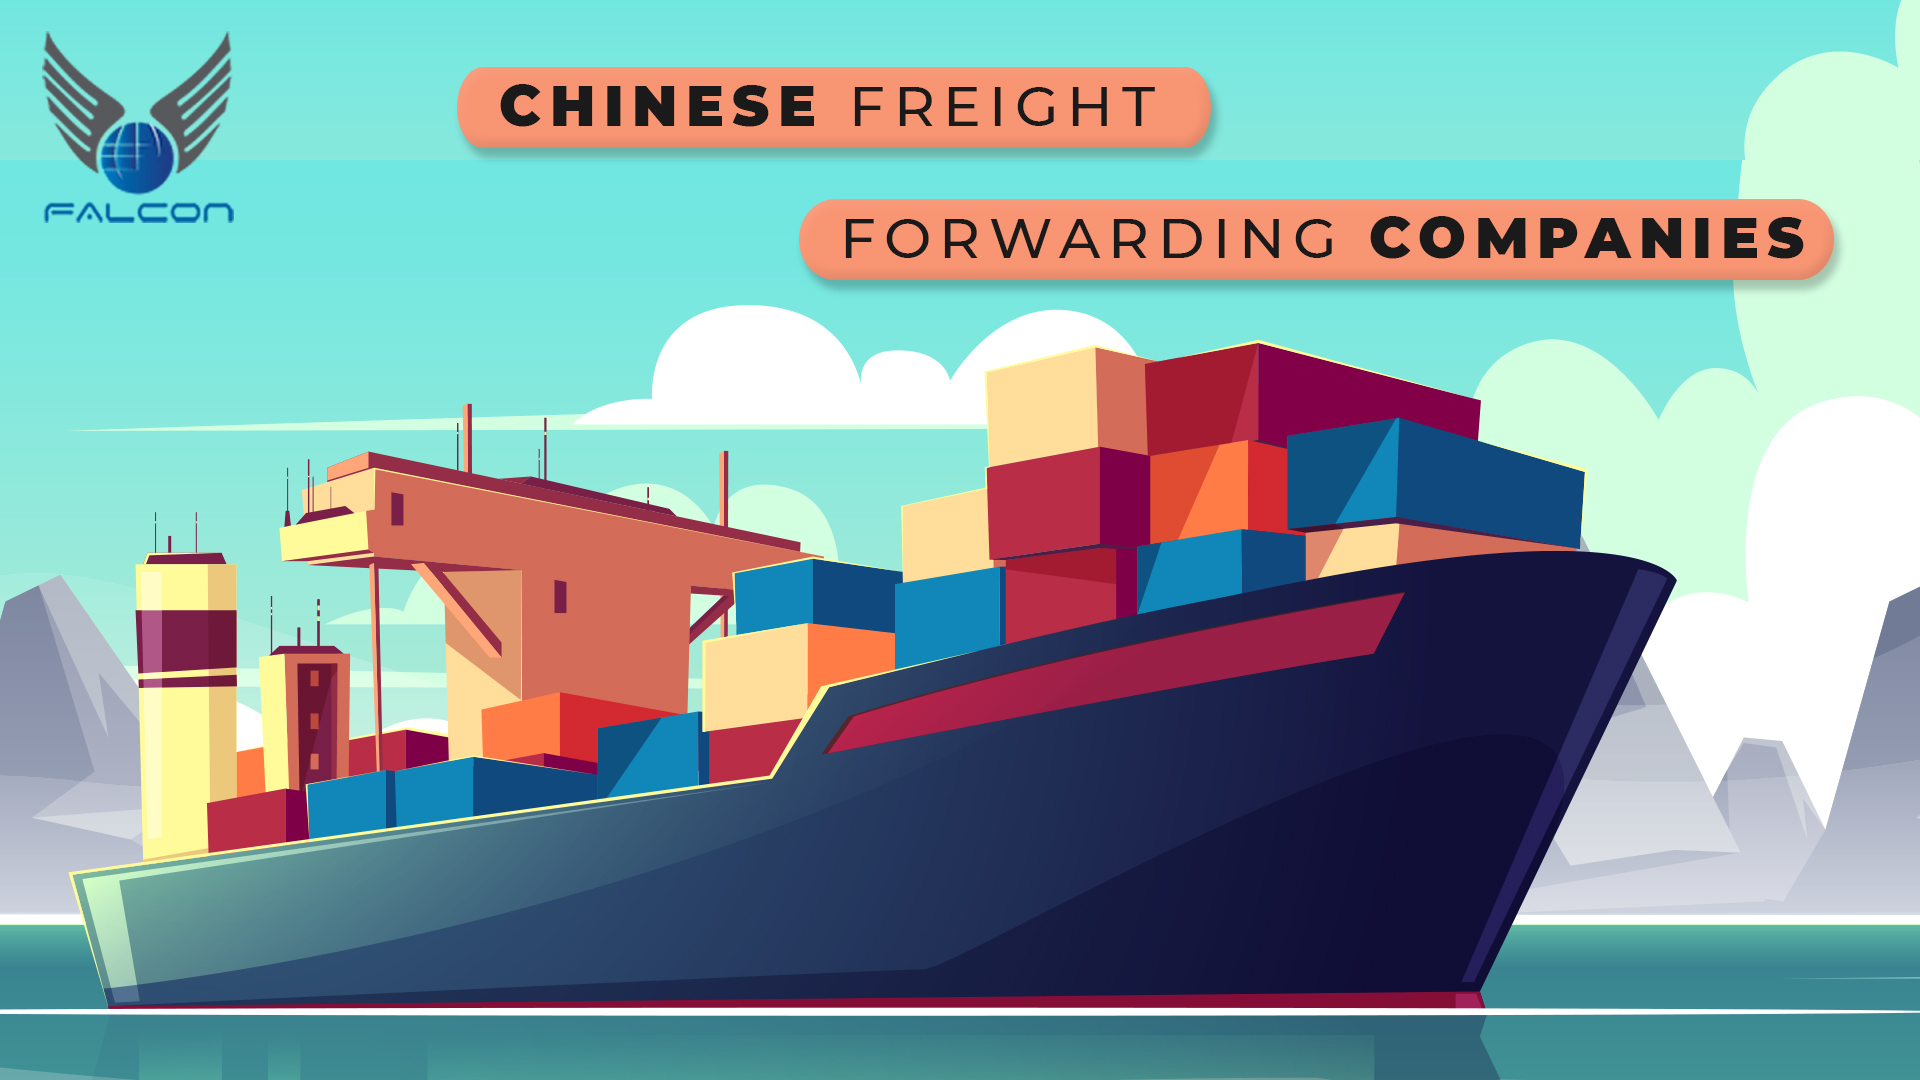 Chinese freight forwarding companies